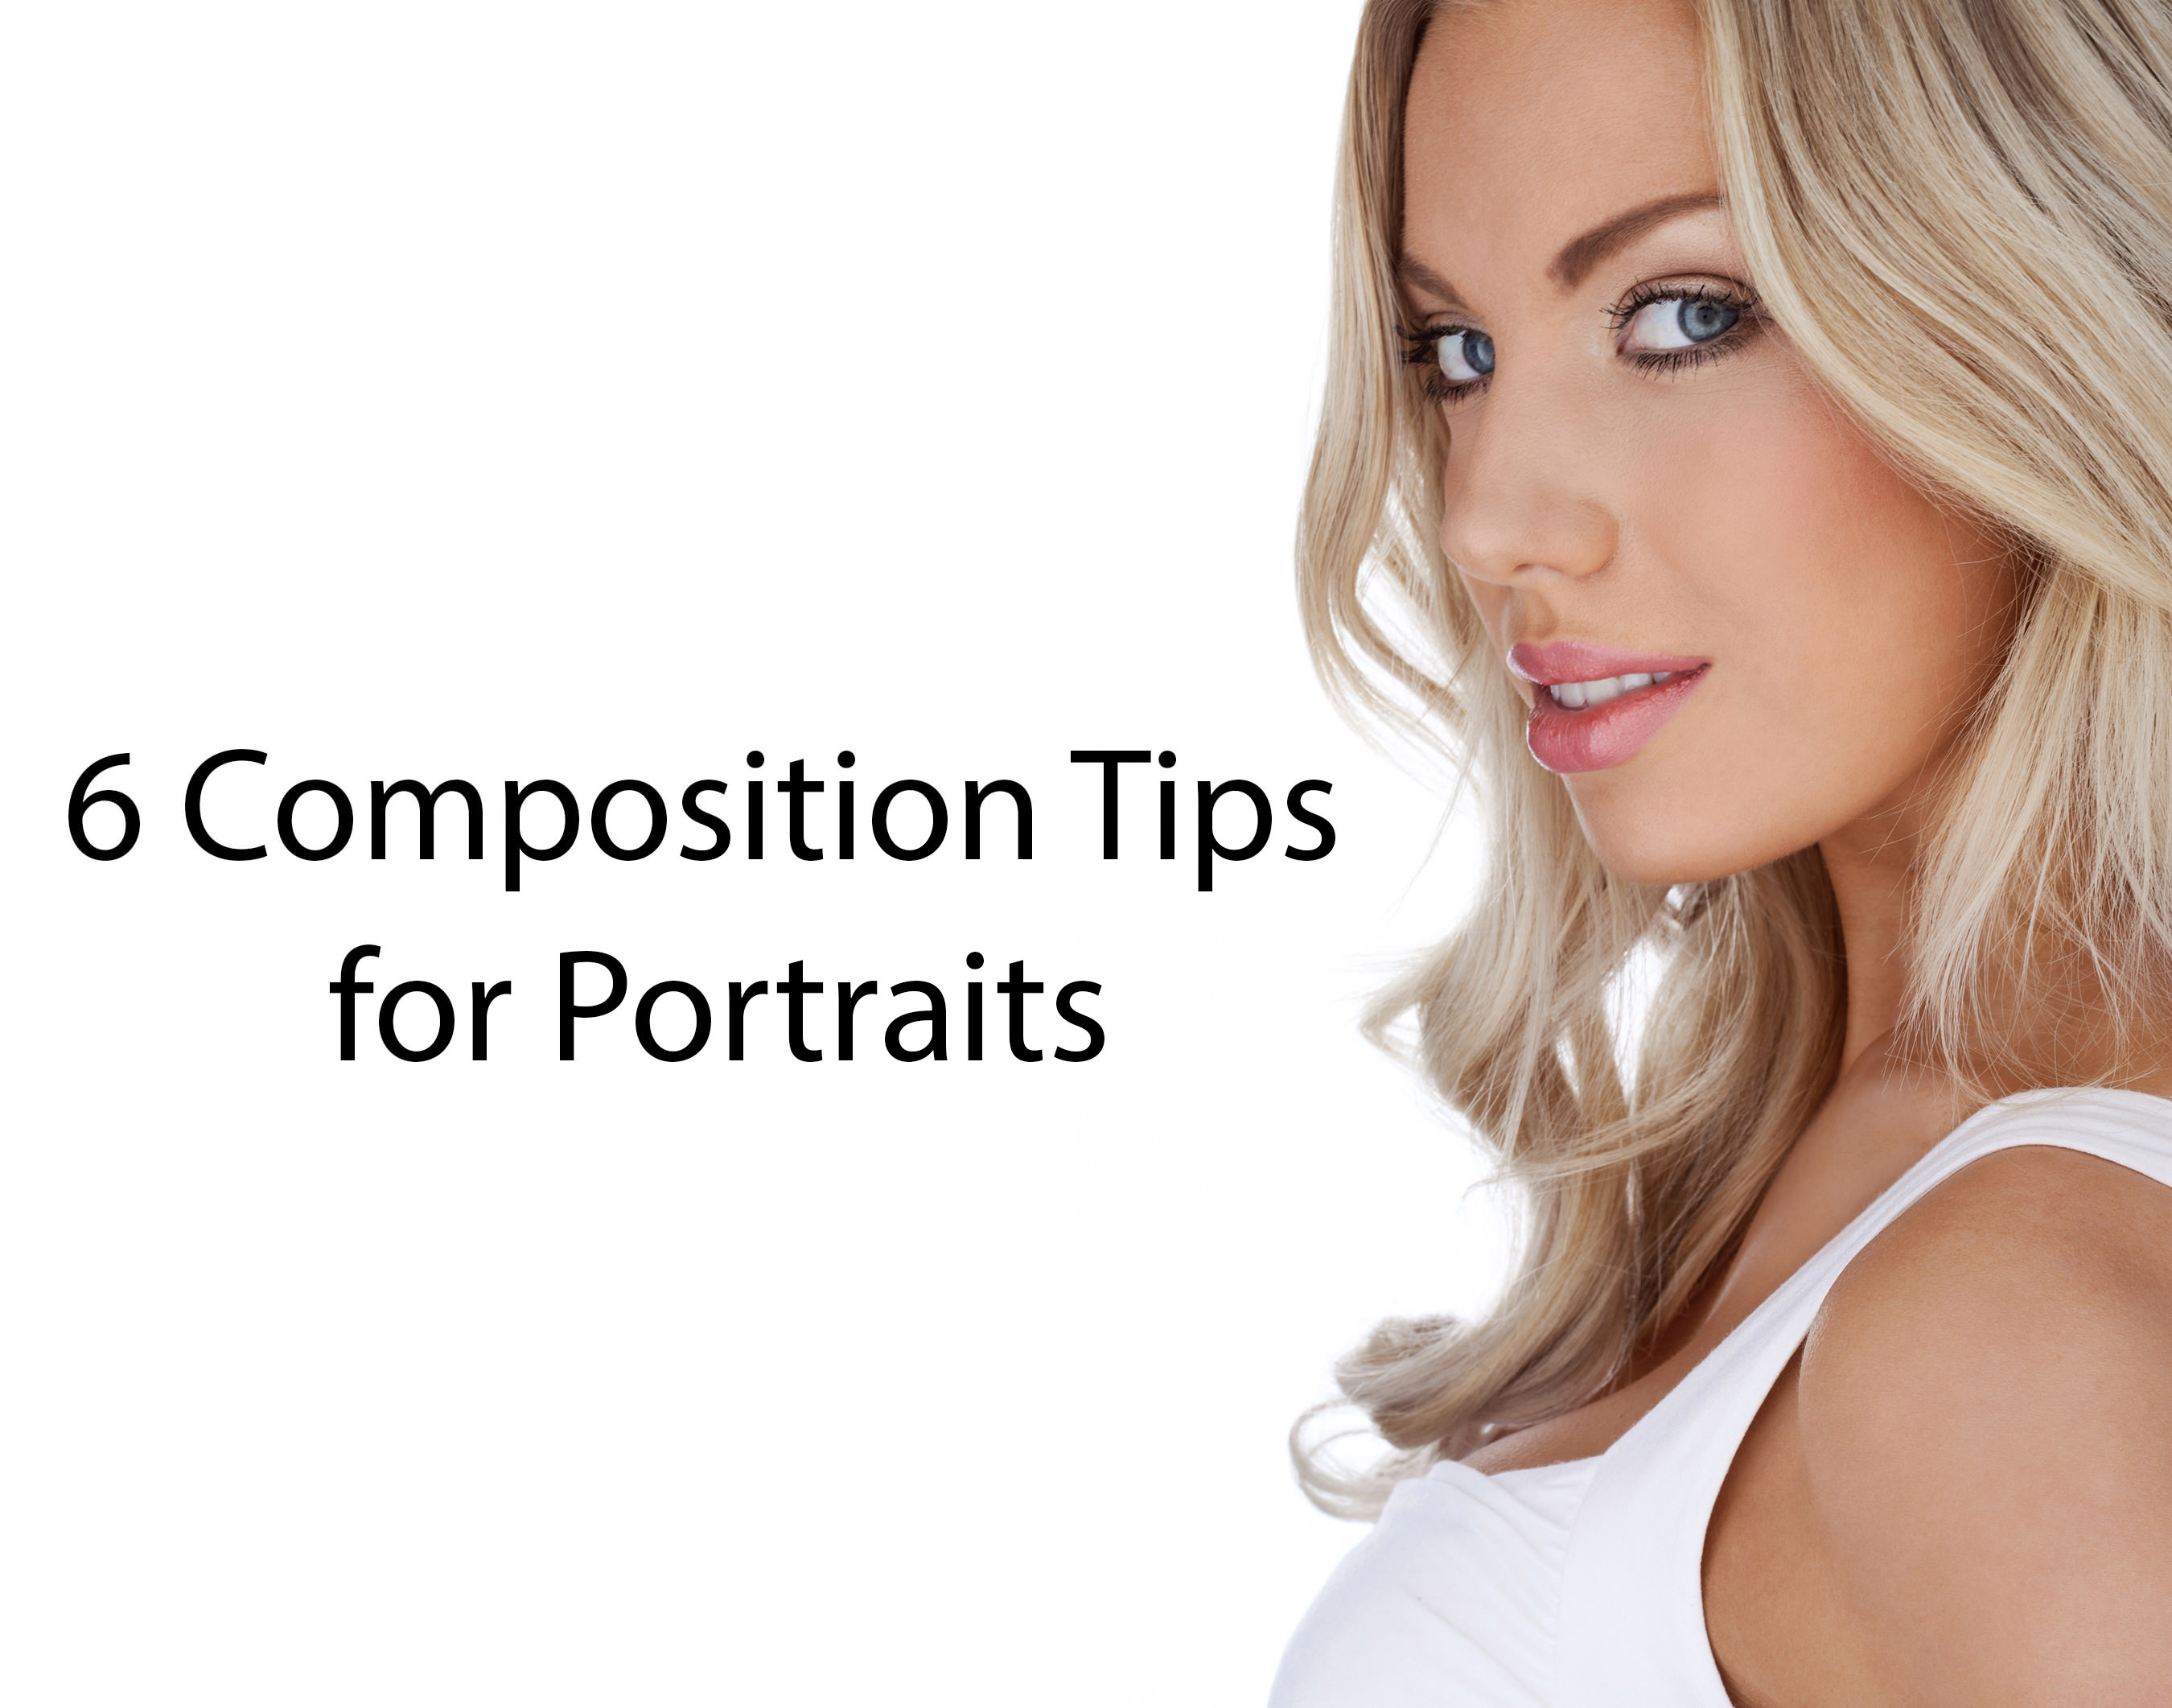 6 Composition Tips for Portraits image